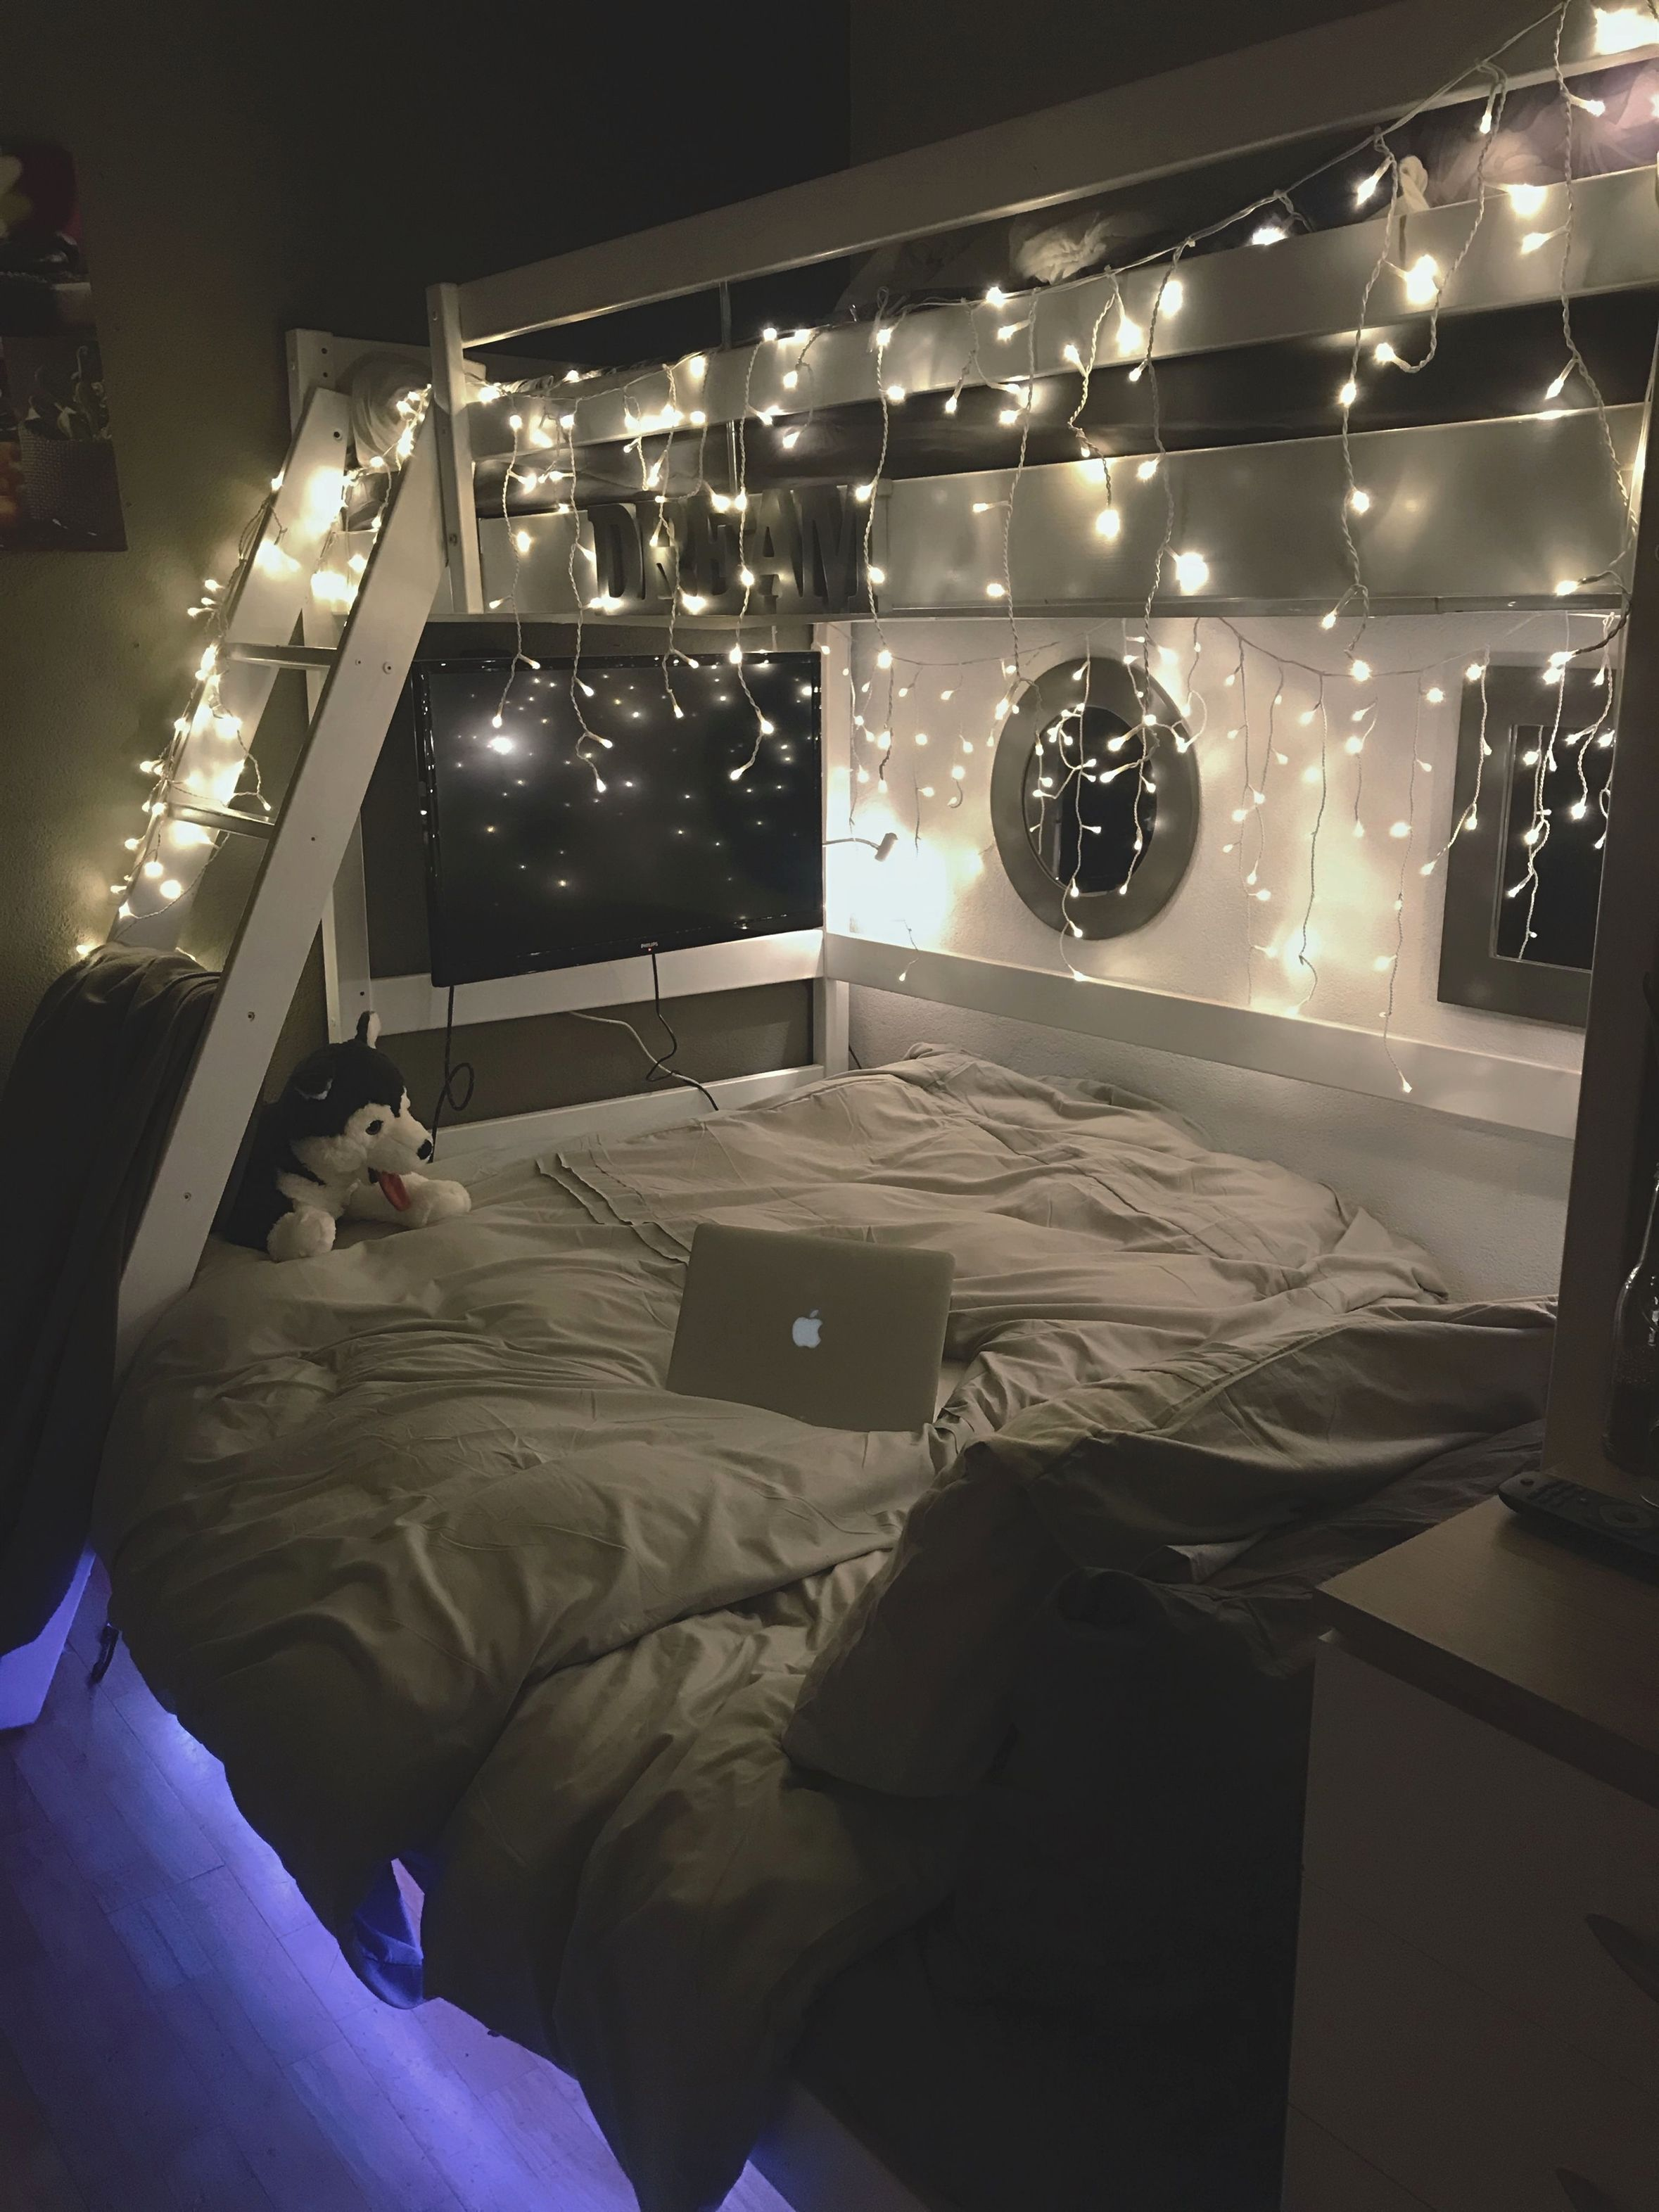 32+ Awesome Teen Girl Bedroom Ideas That Are Fun and Cool images